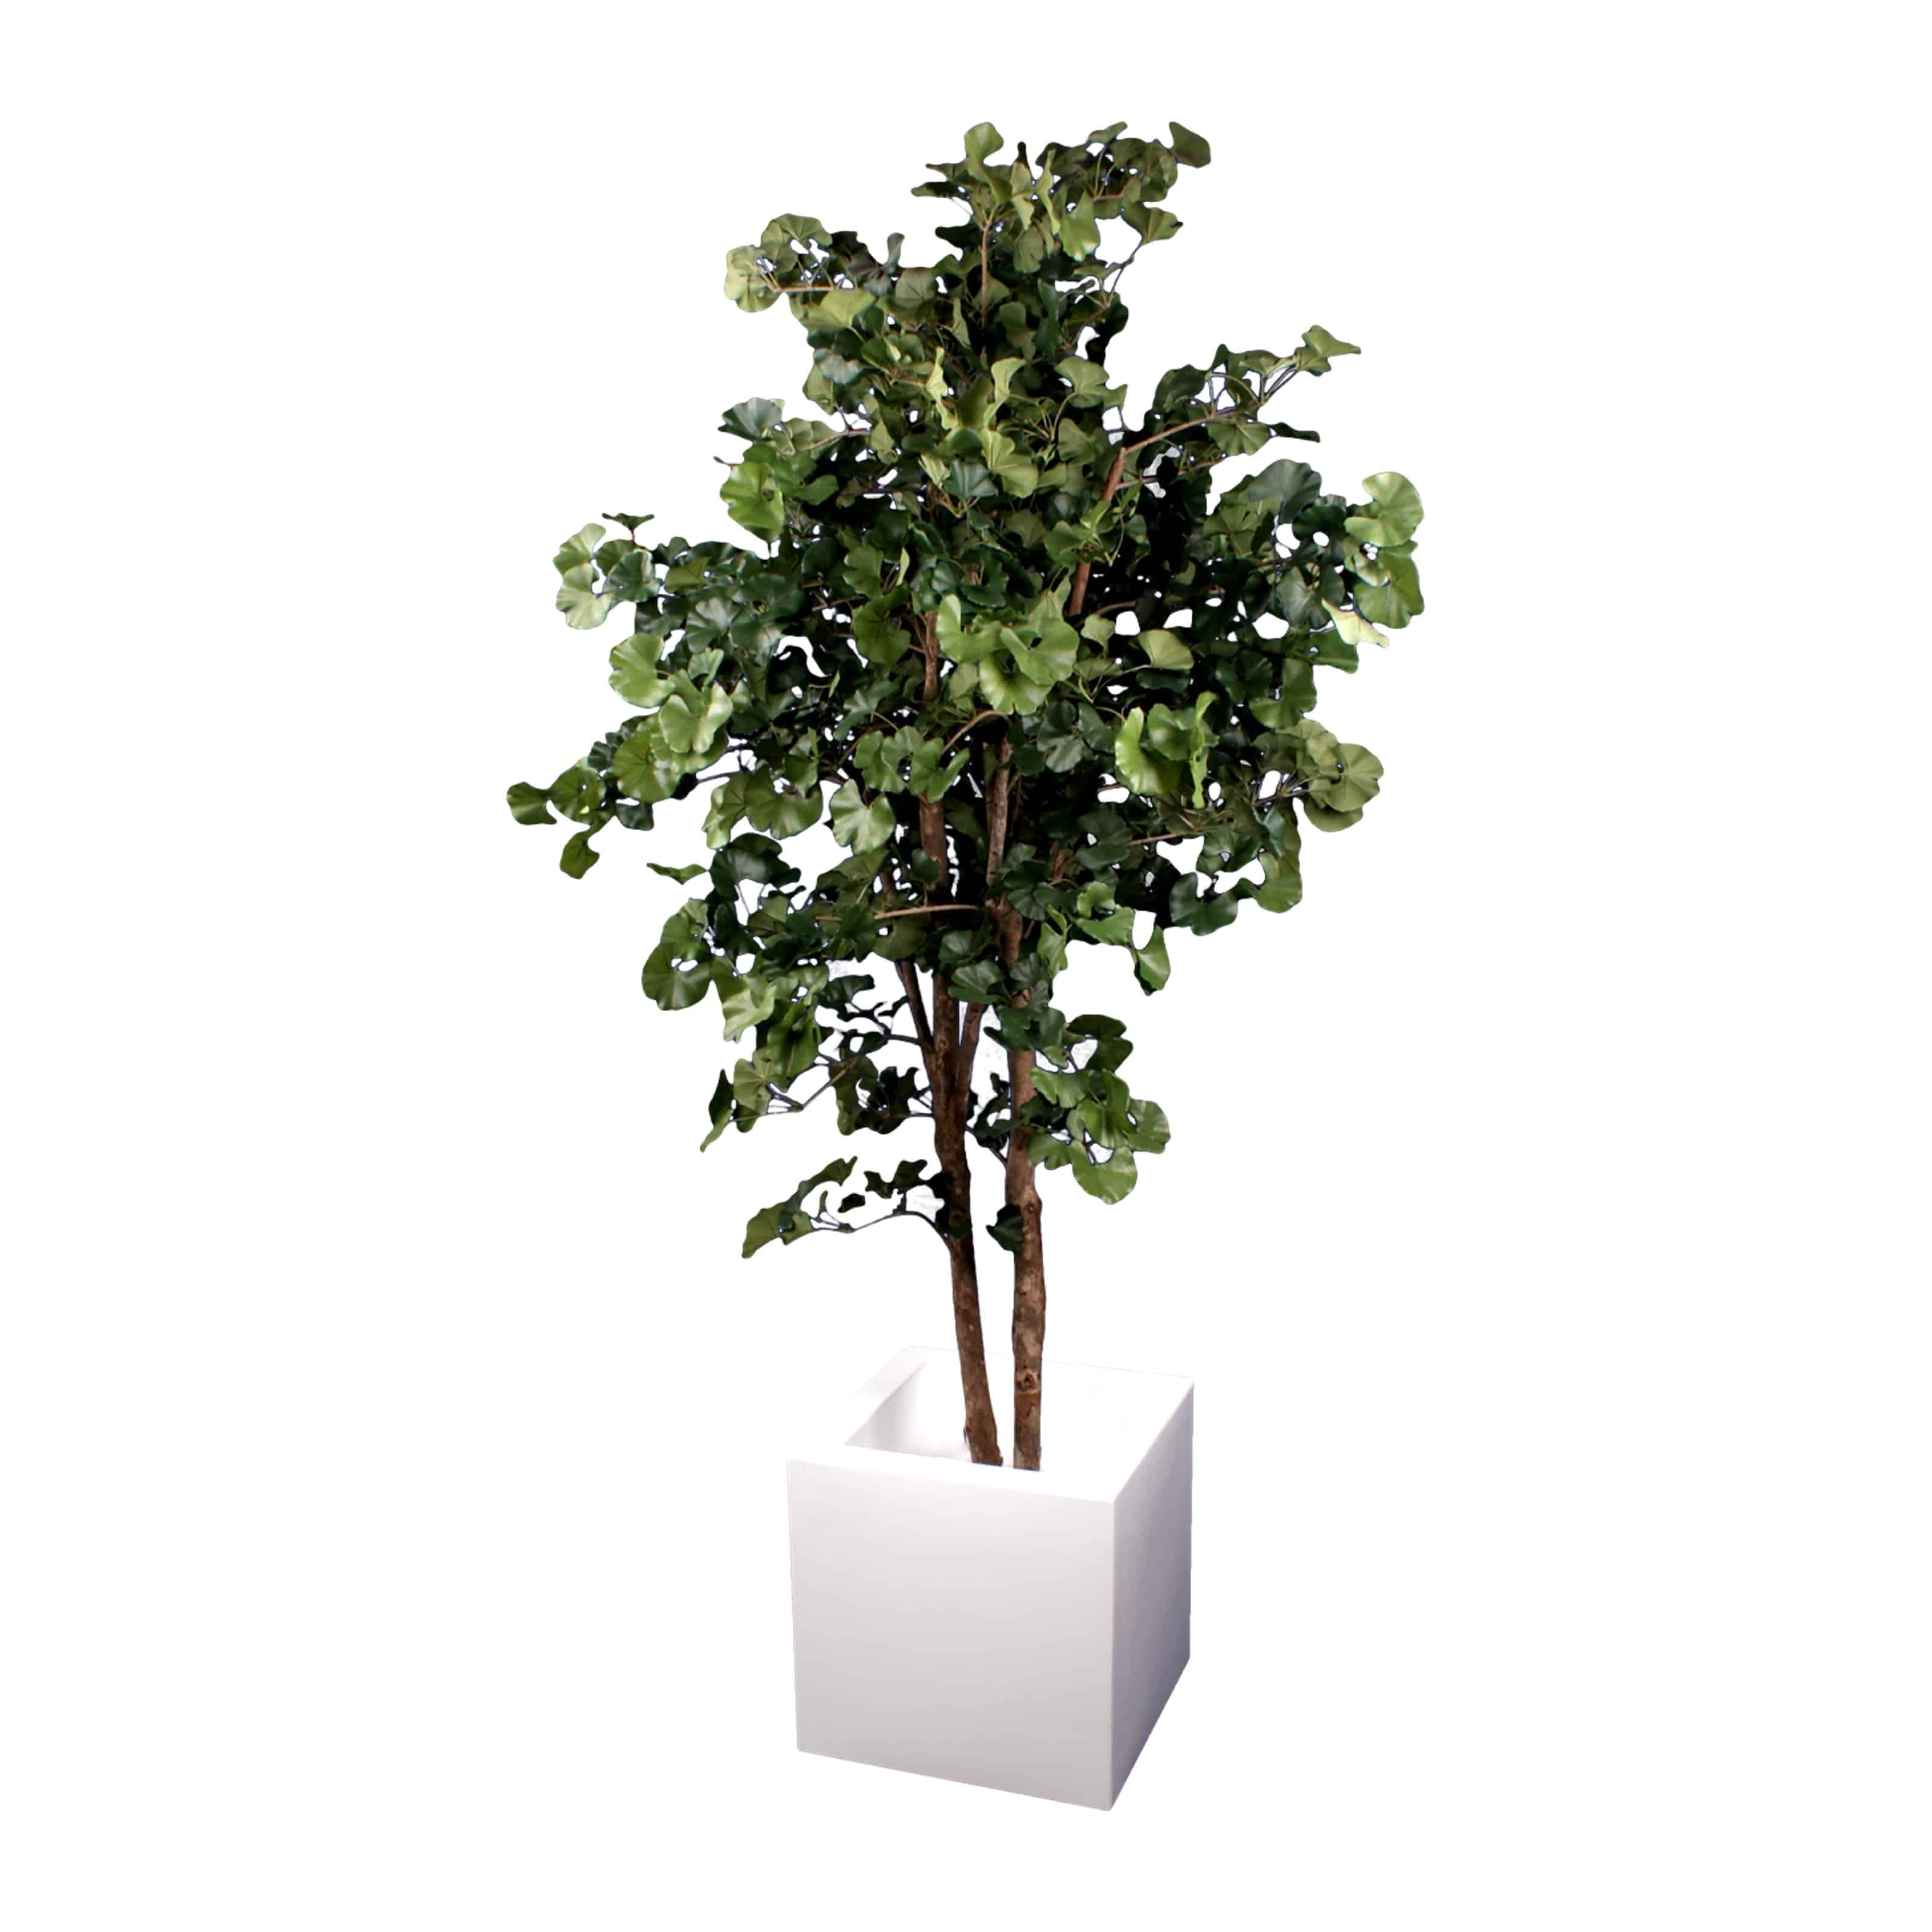 Ginkgo Biloba Artificial Tree White Box Pot Shop